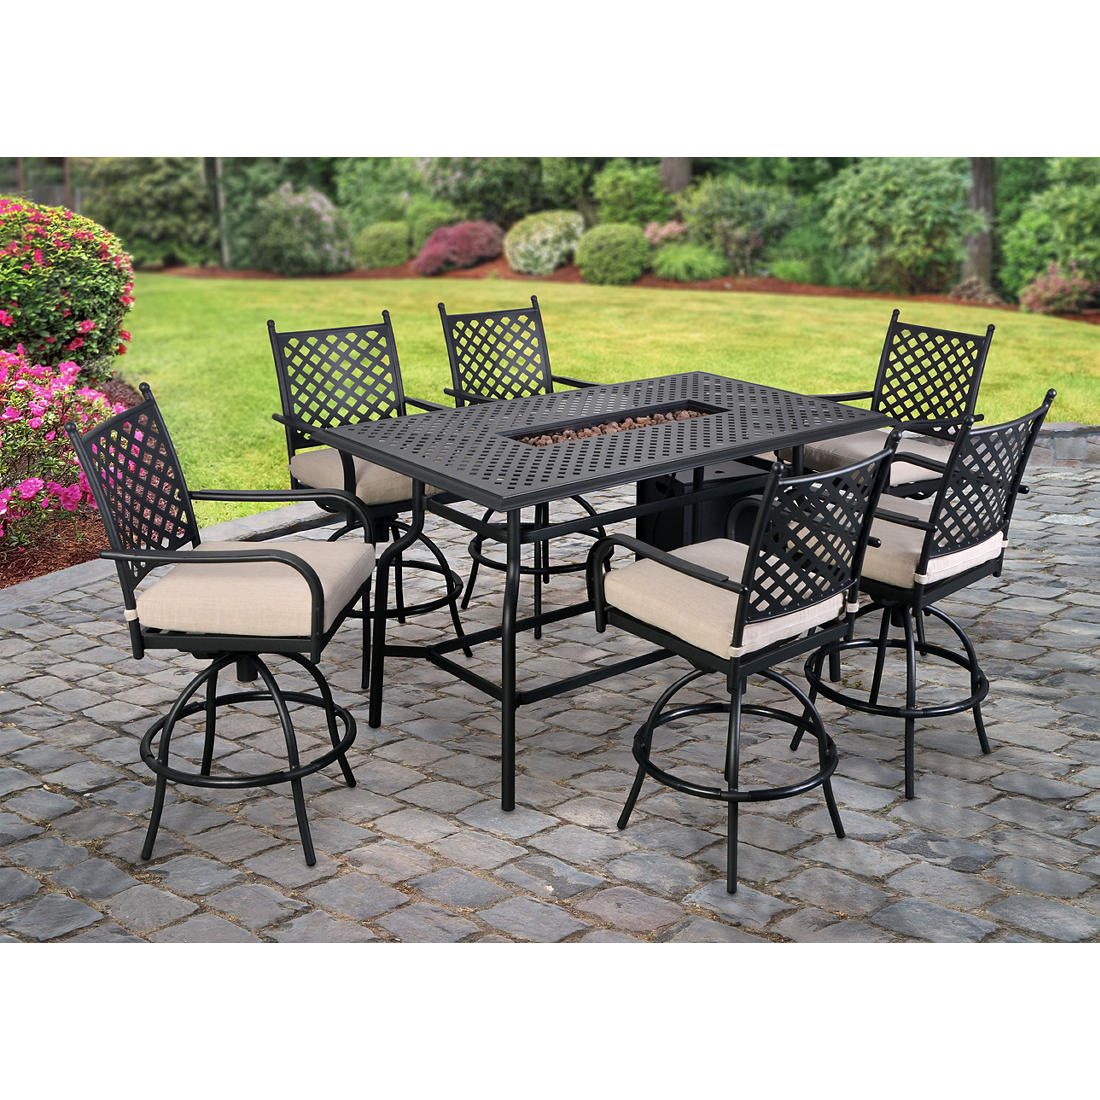 Berkley Jensen Westland 8 Pc High Dining Set With Fire Table Bjs Wholesale Club